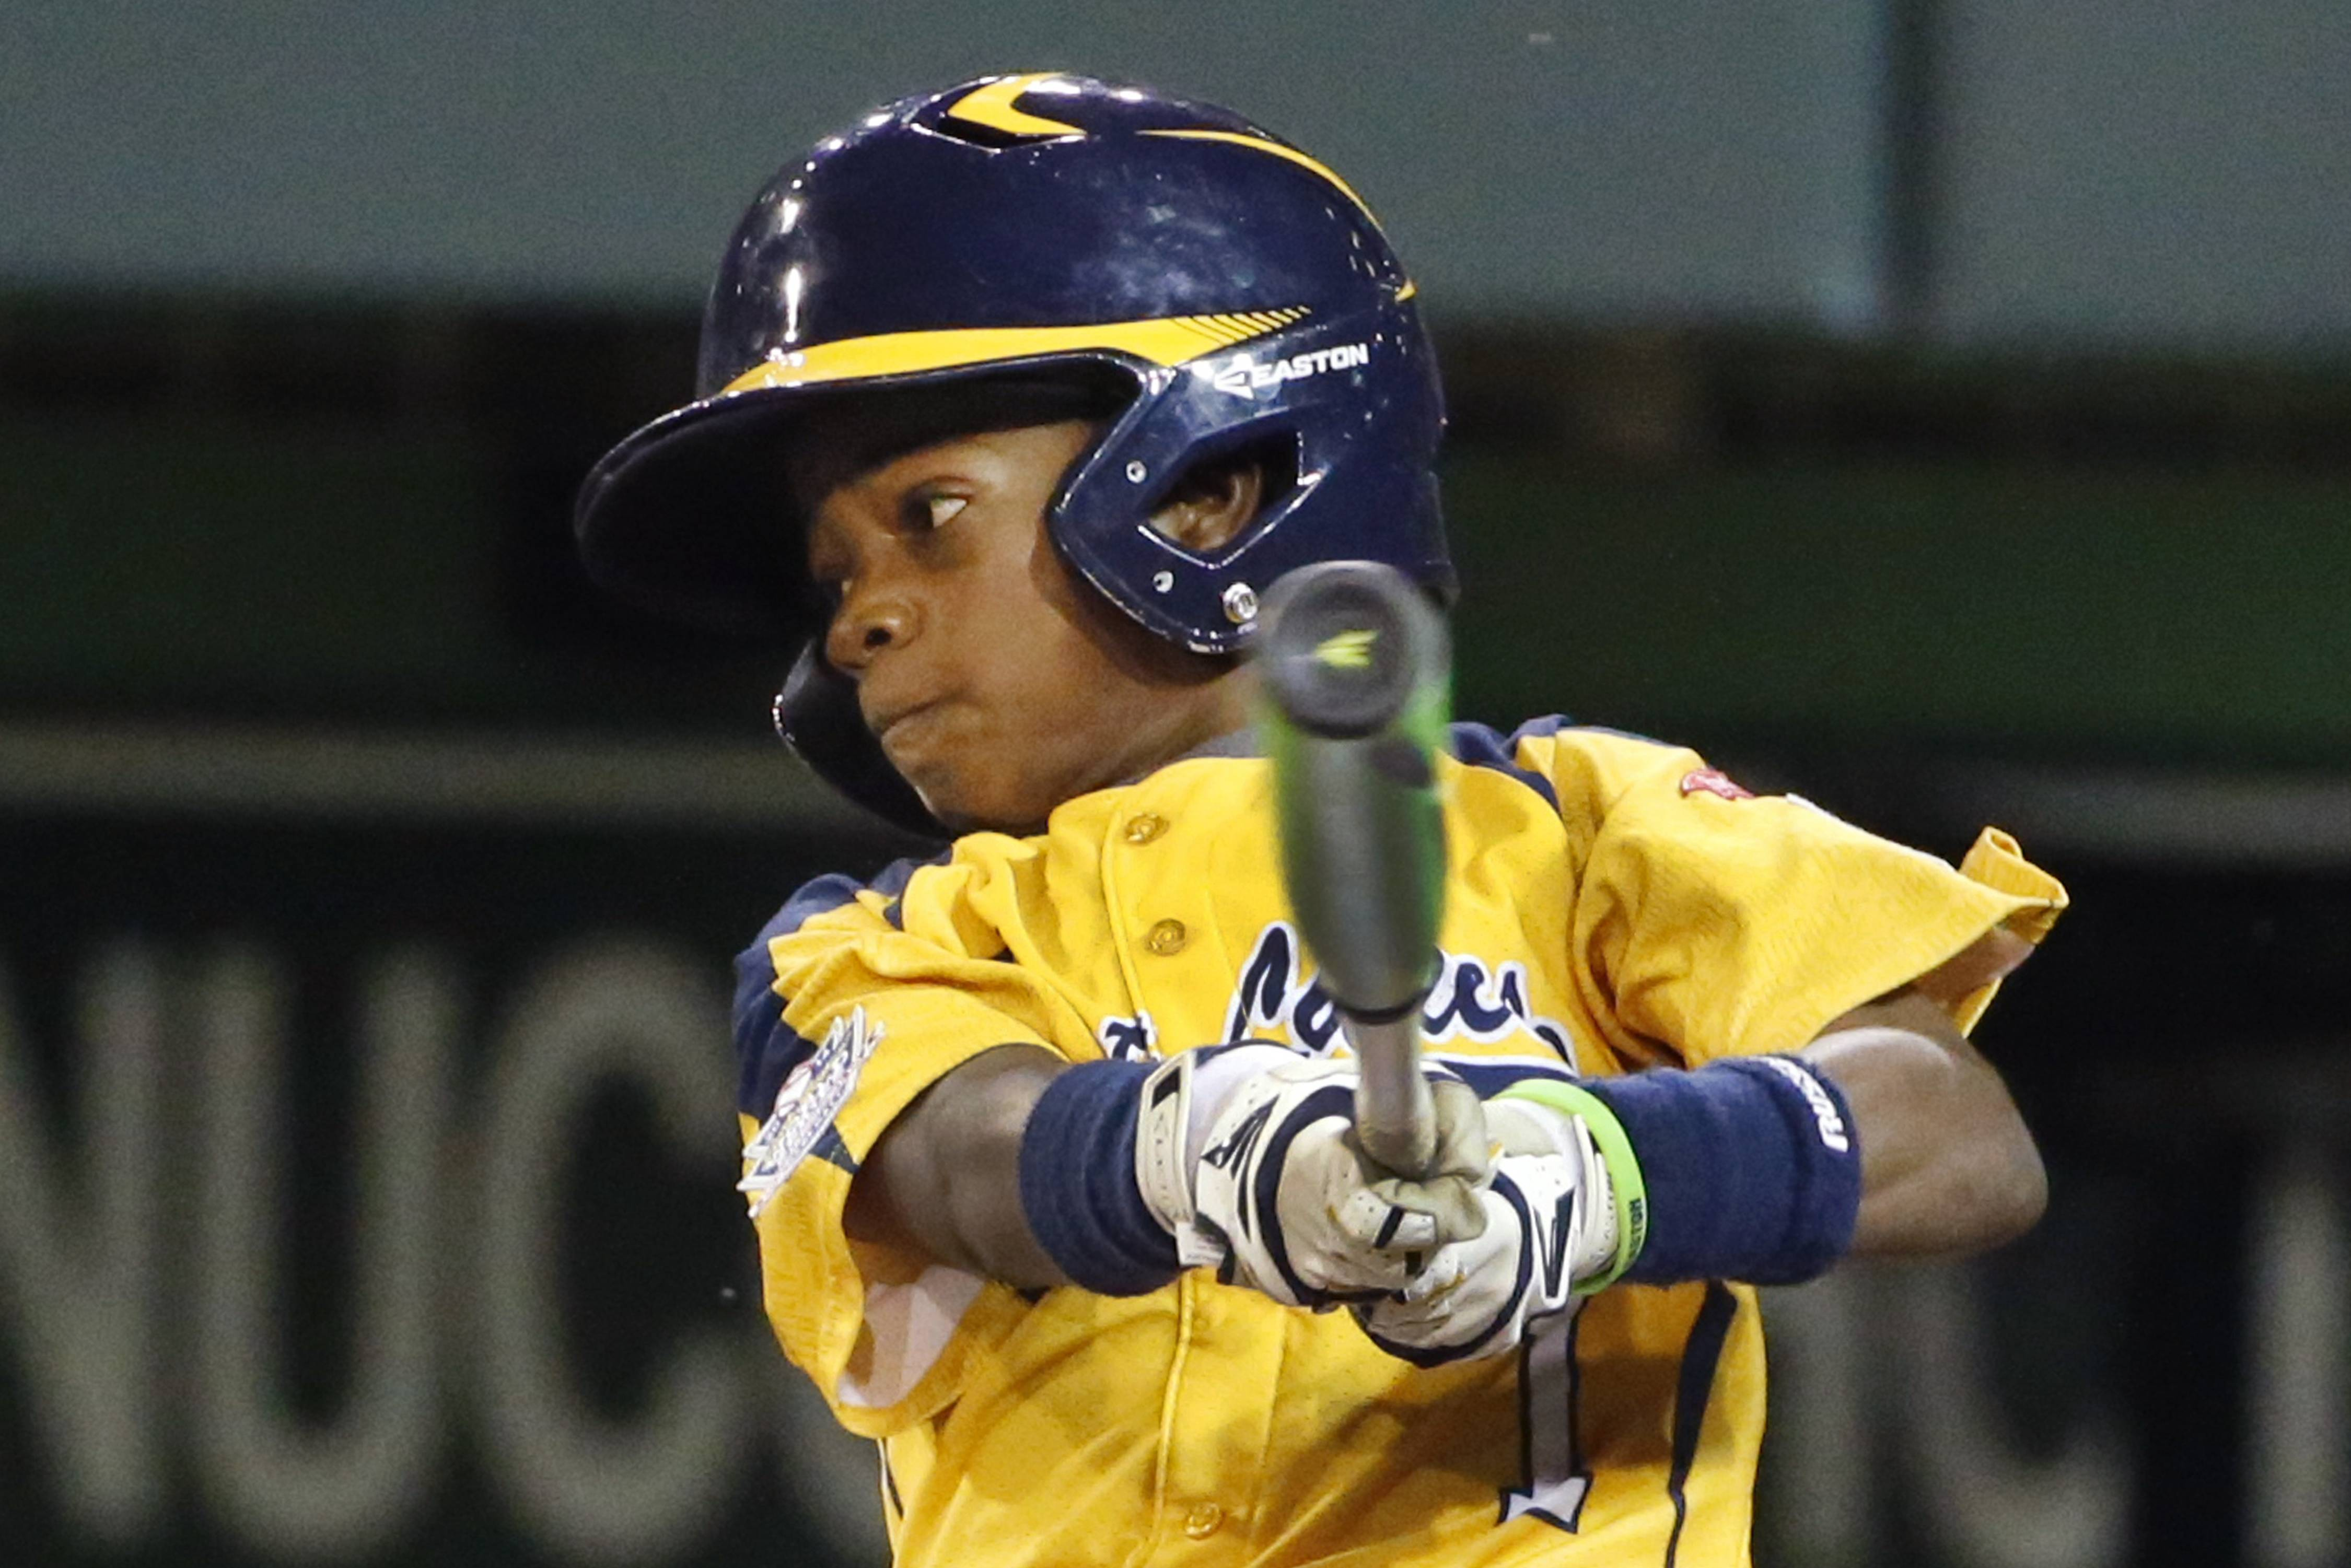 Jackie Robinson West playing in U.S. final today